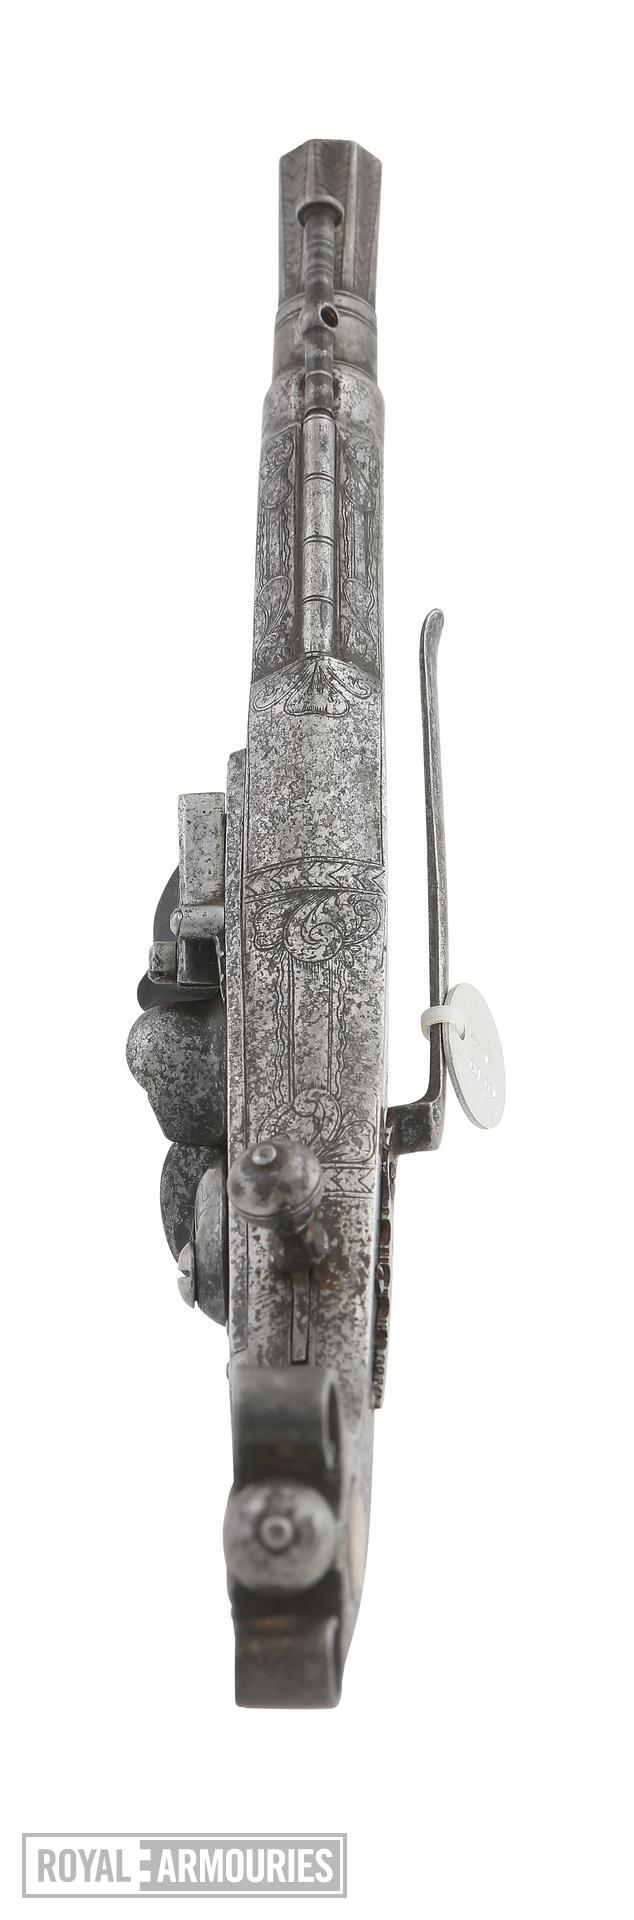 Fake flintlock pistol. Copy of a Scottish all-steel pistol, purporting to be by John Campbell. XXI.87